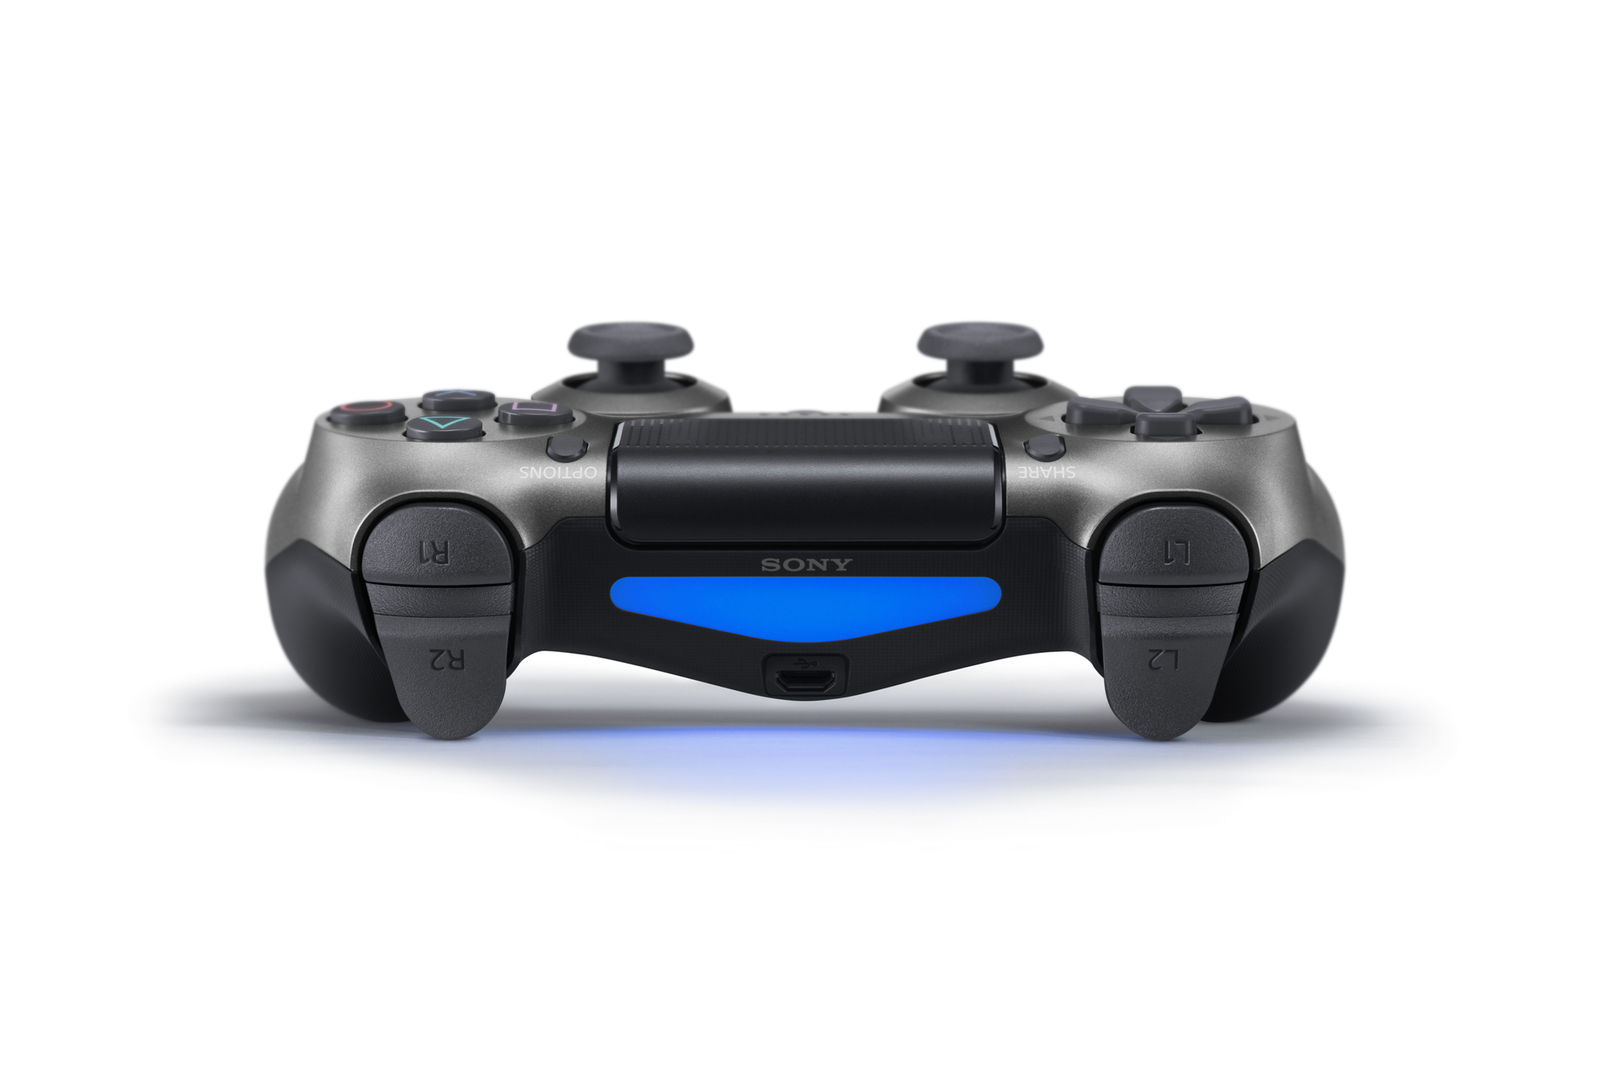 PlayStation 4 Dual Shock 4 v2 Wireless Controller - Steel Black for PS4 image